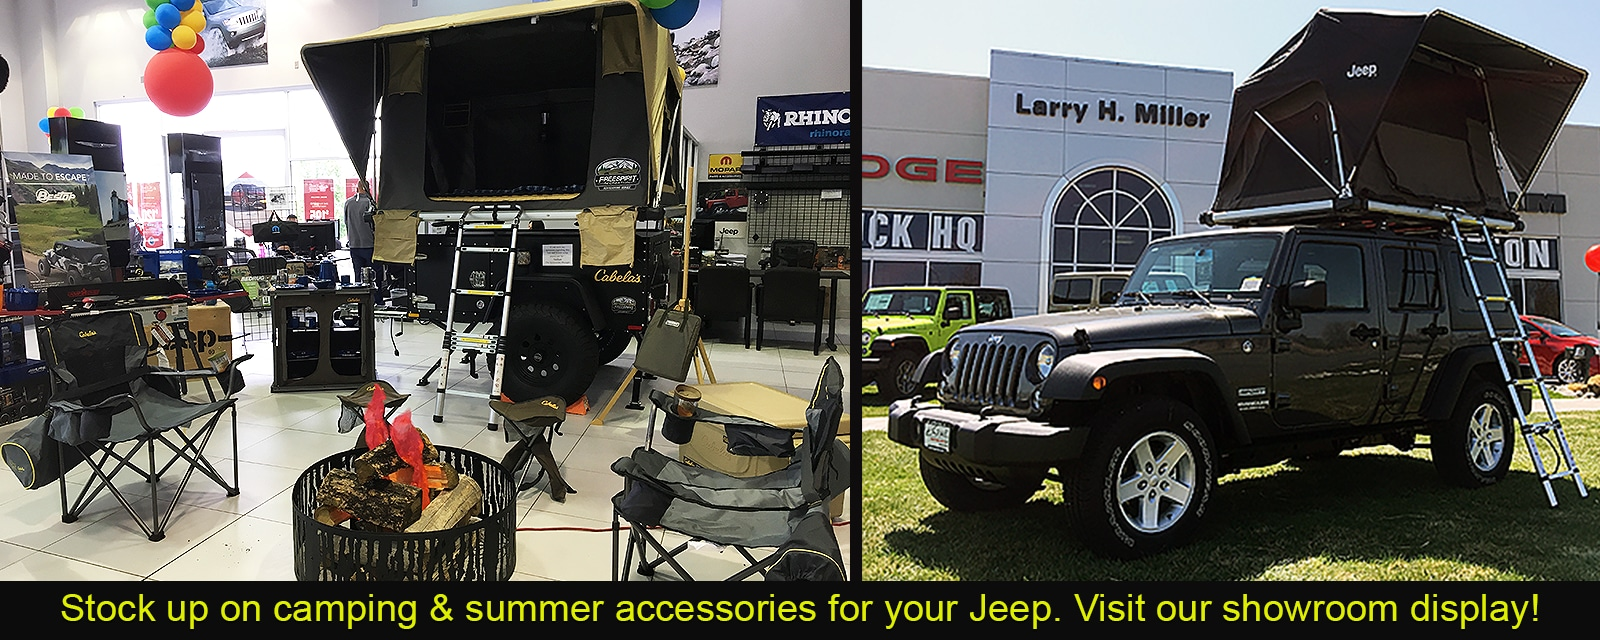 Jeep Camping Gear and Accessories